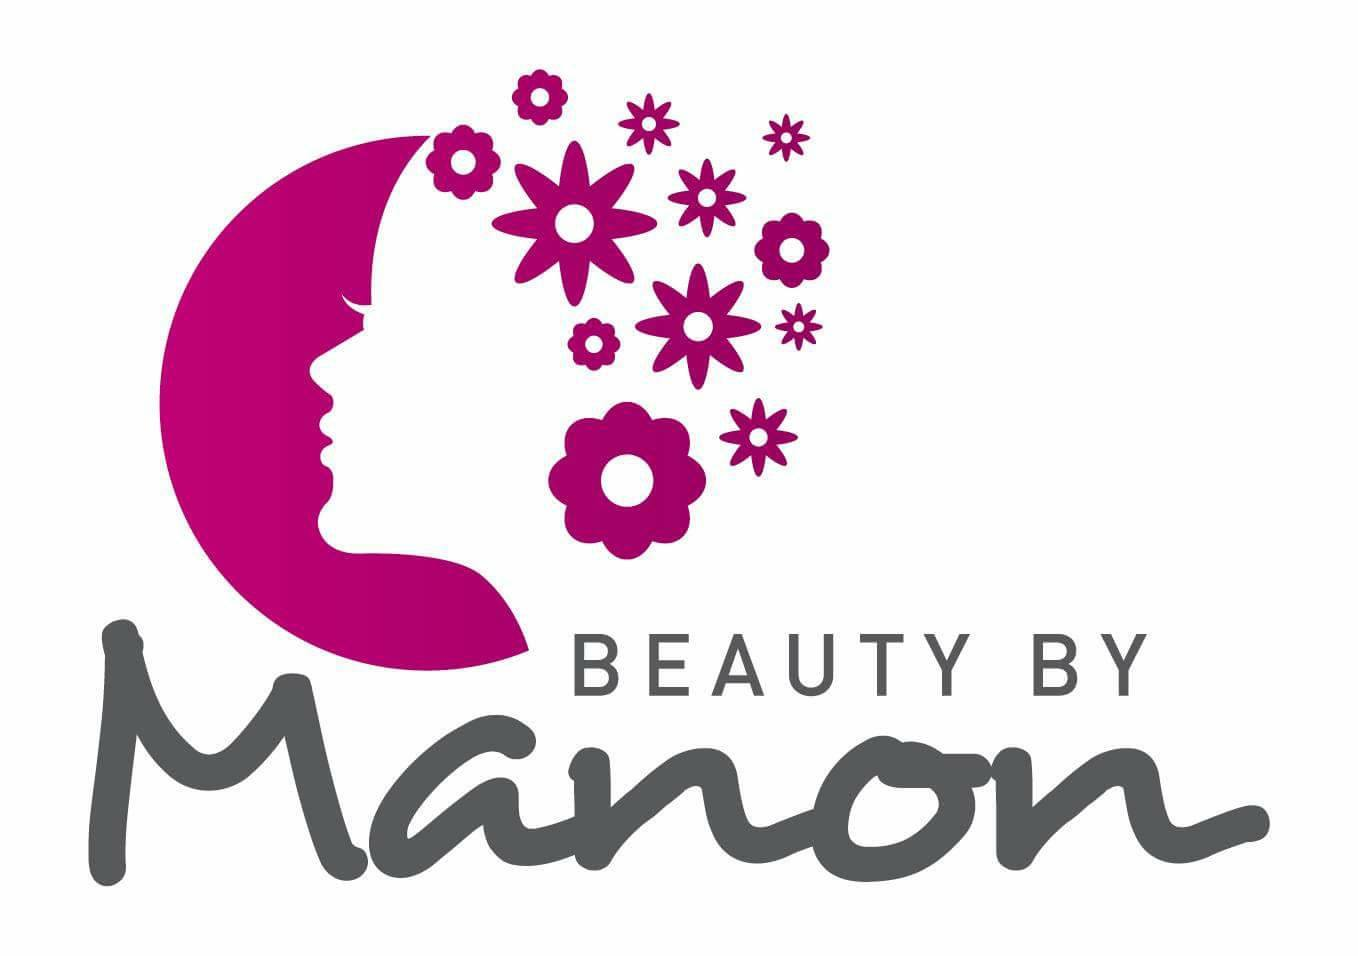 Beauty by Manon